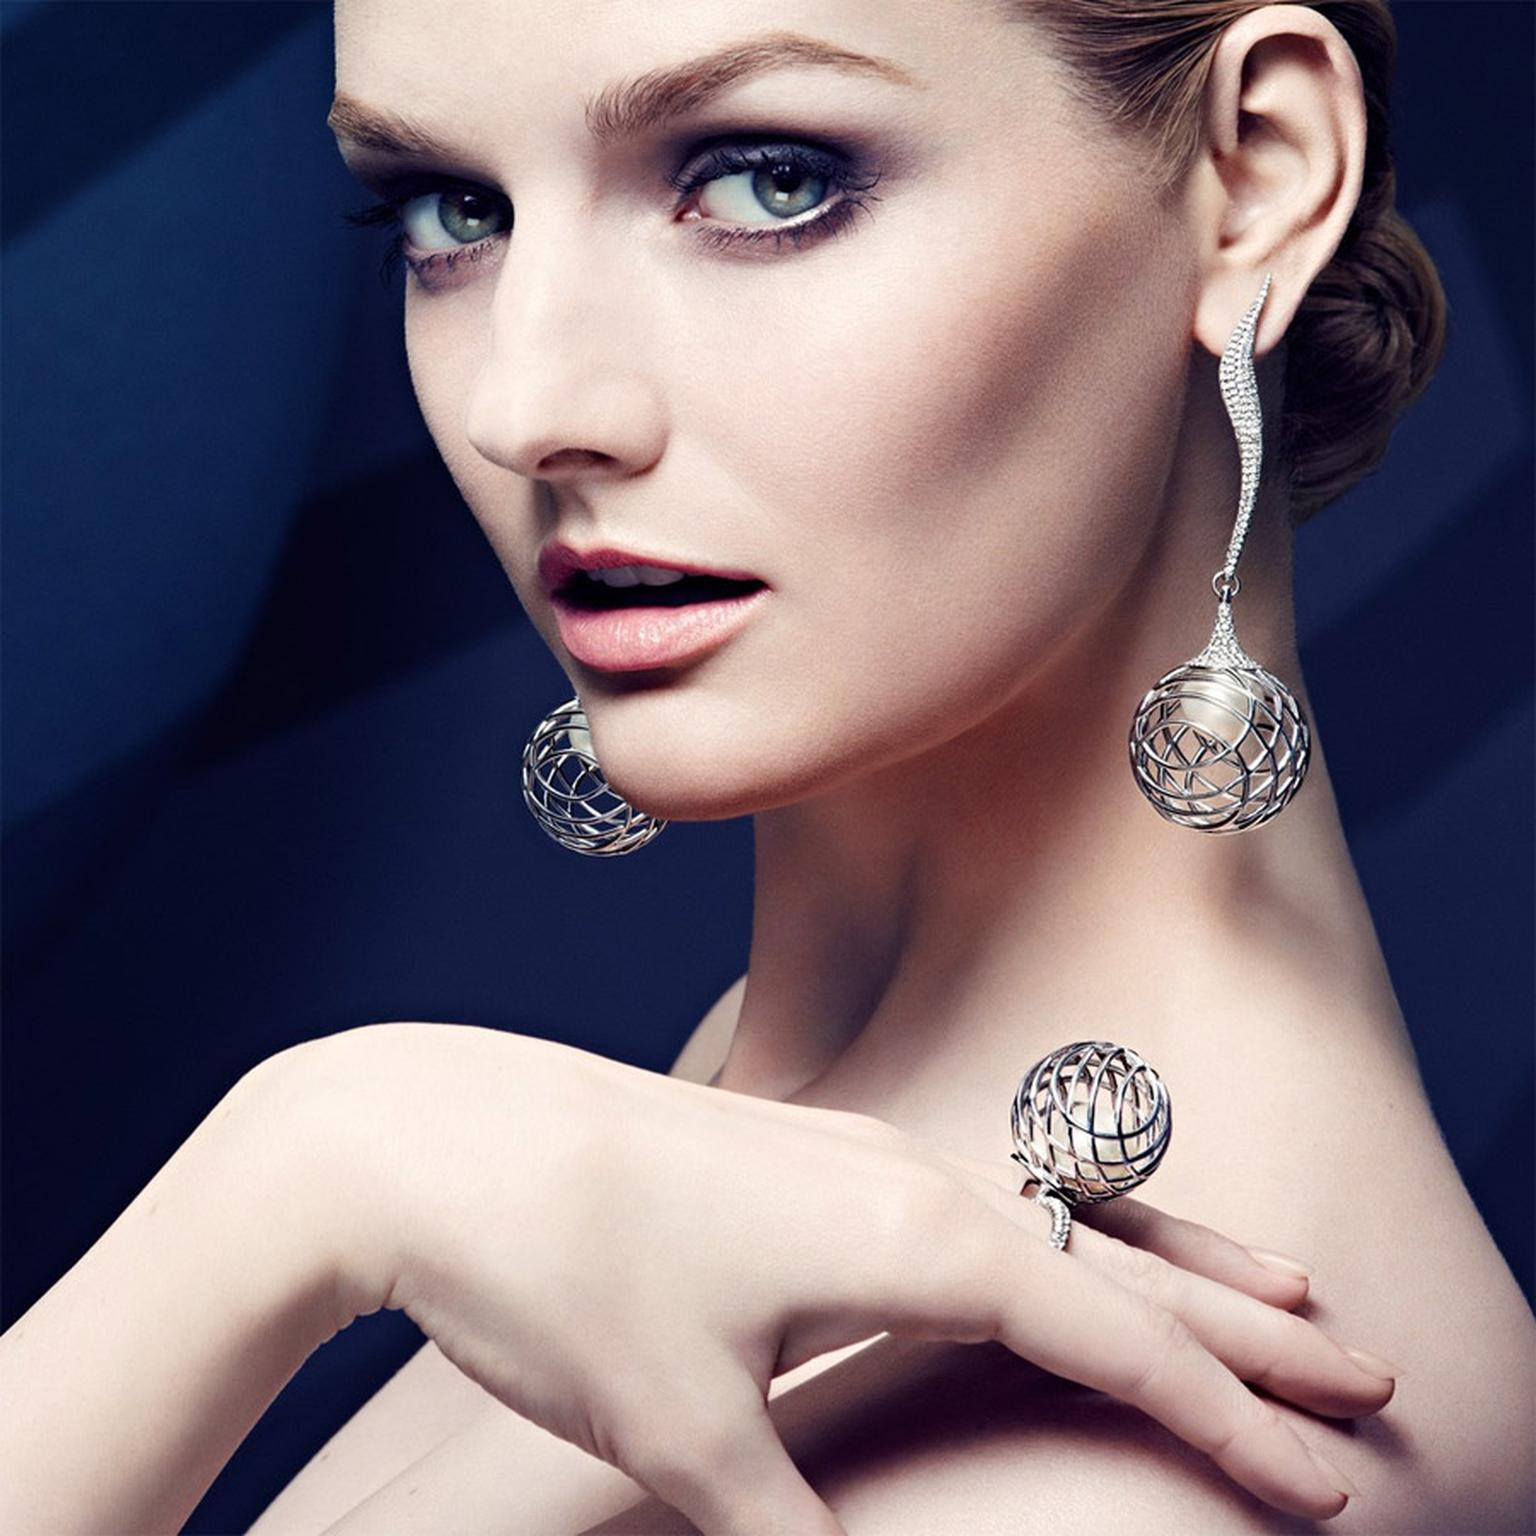 The-Palladium-Fine-Jewellery-Lara-Bohinc-Model-3.jpg